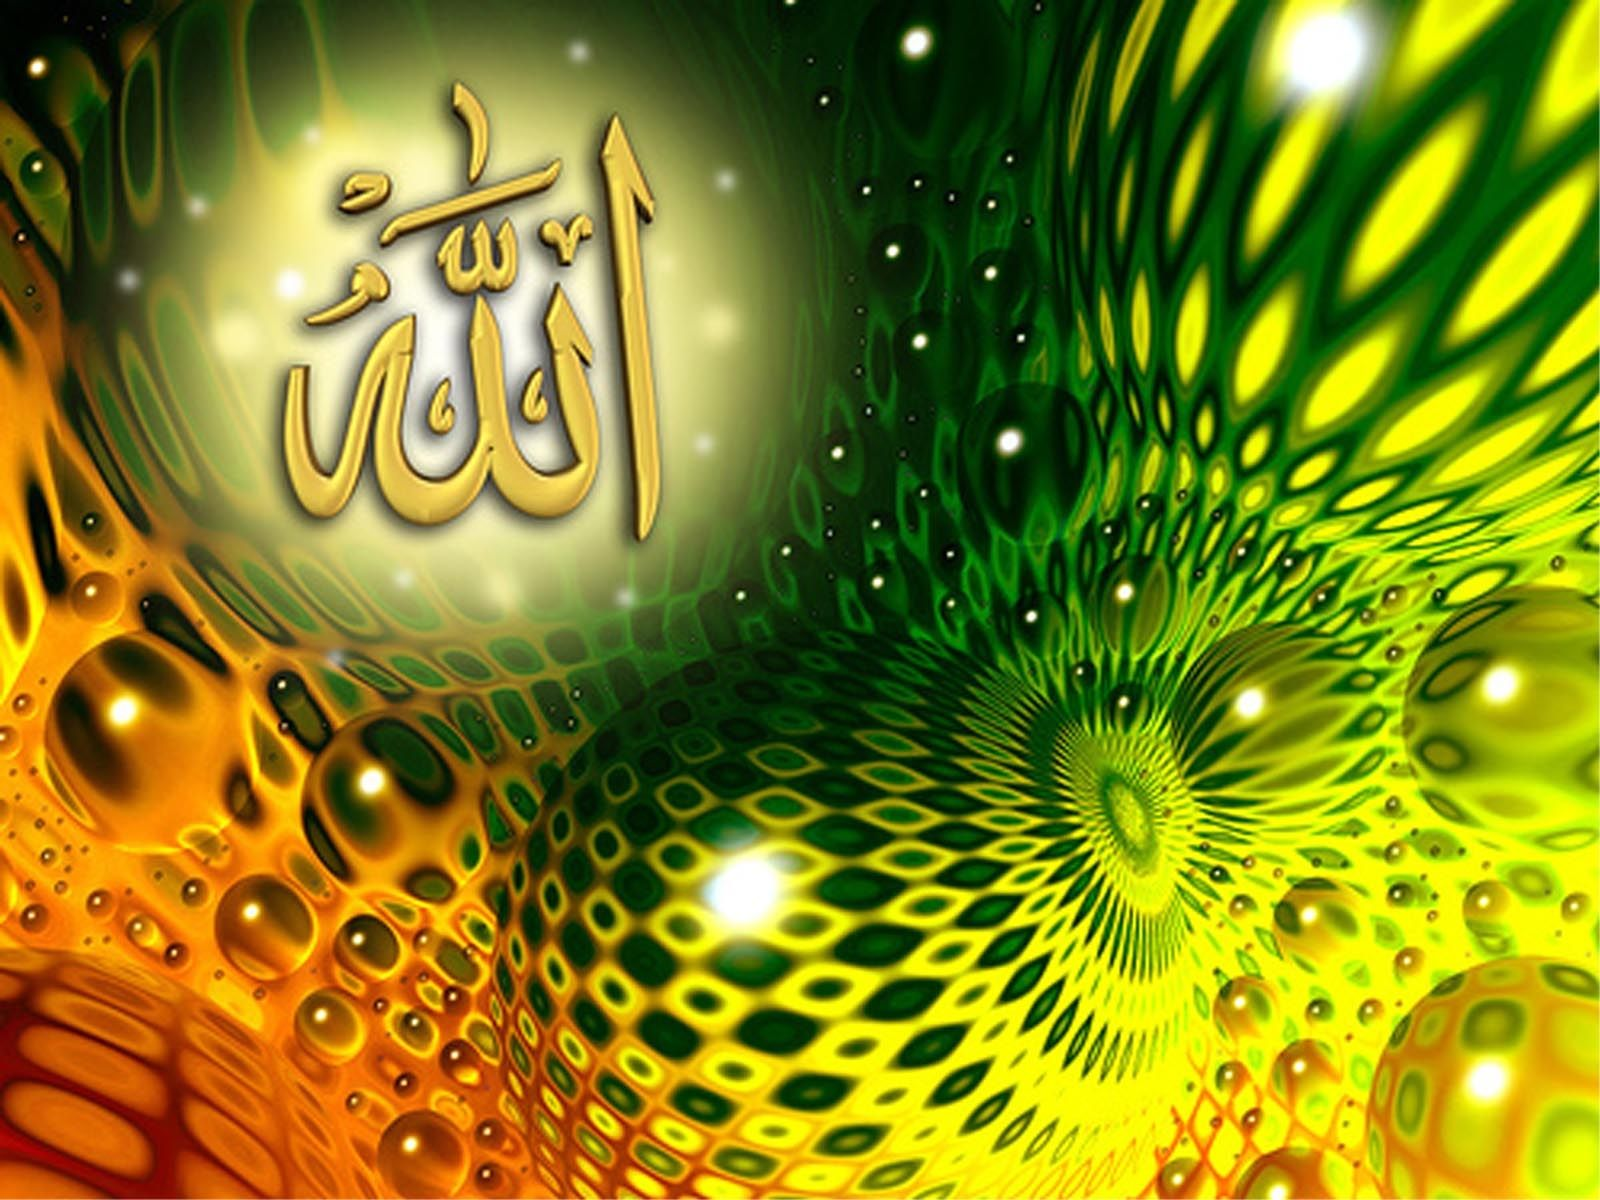 New Islamic 3d Wallpaper Islamic 3d Wallpaper